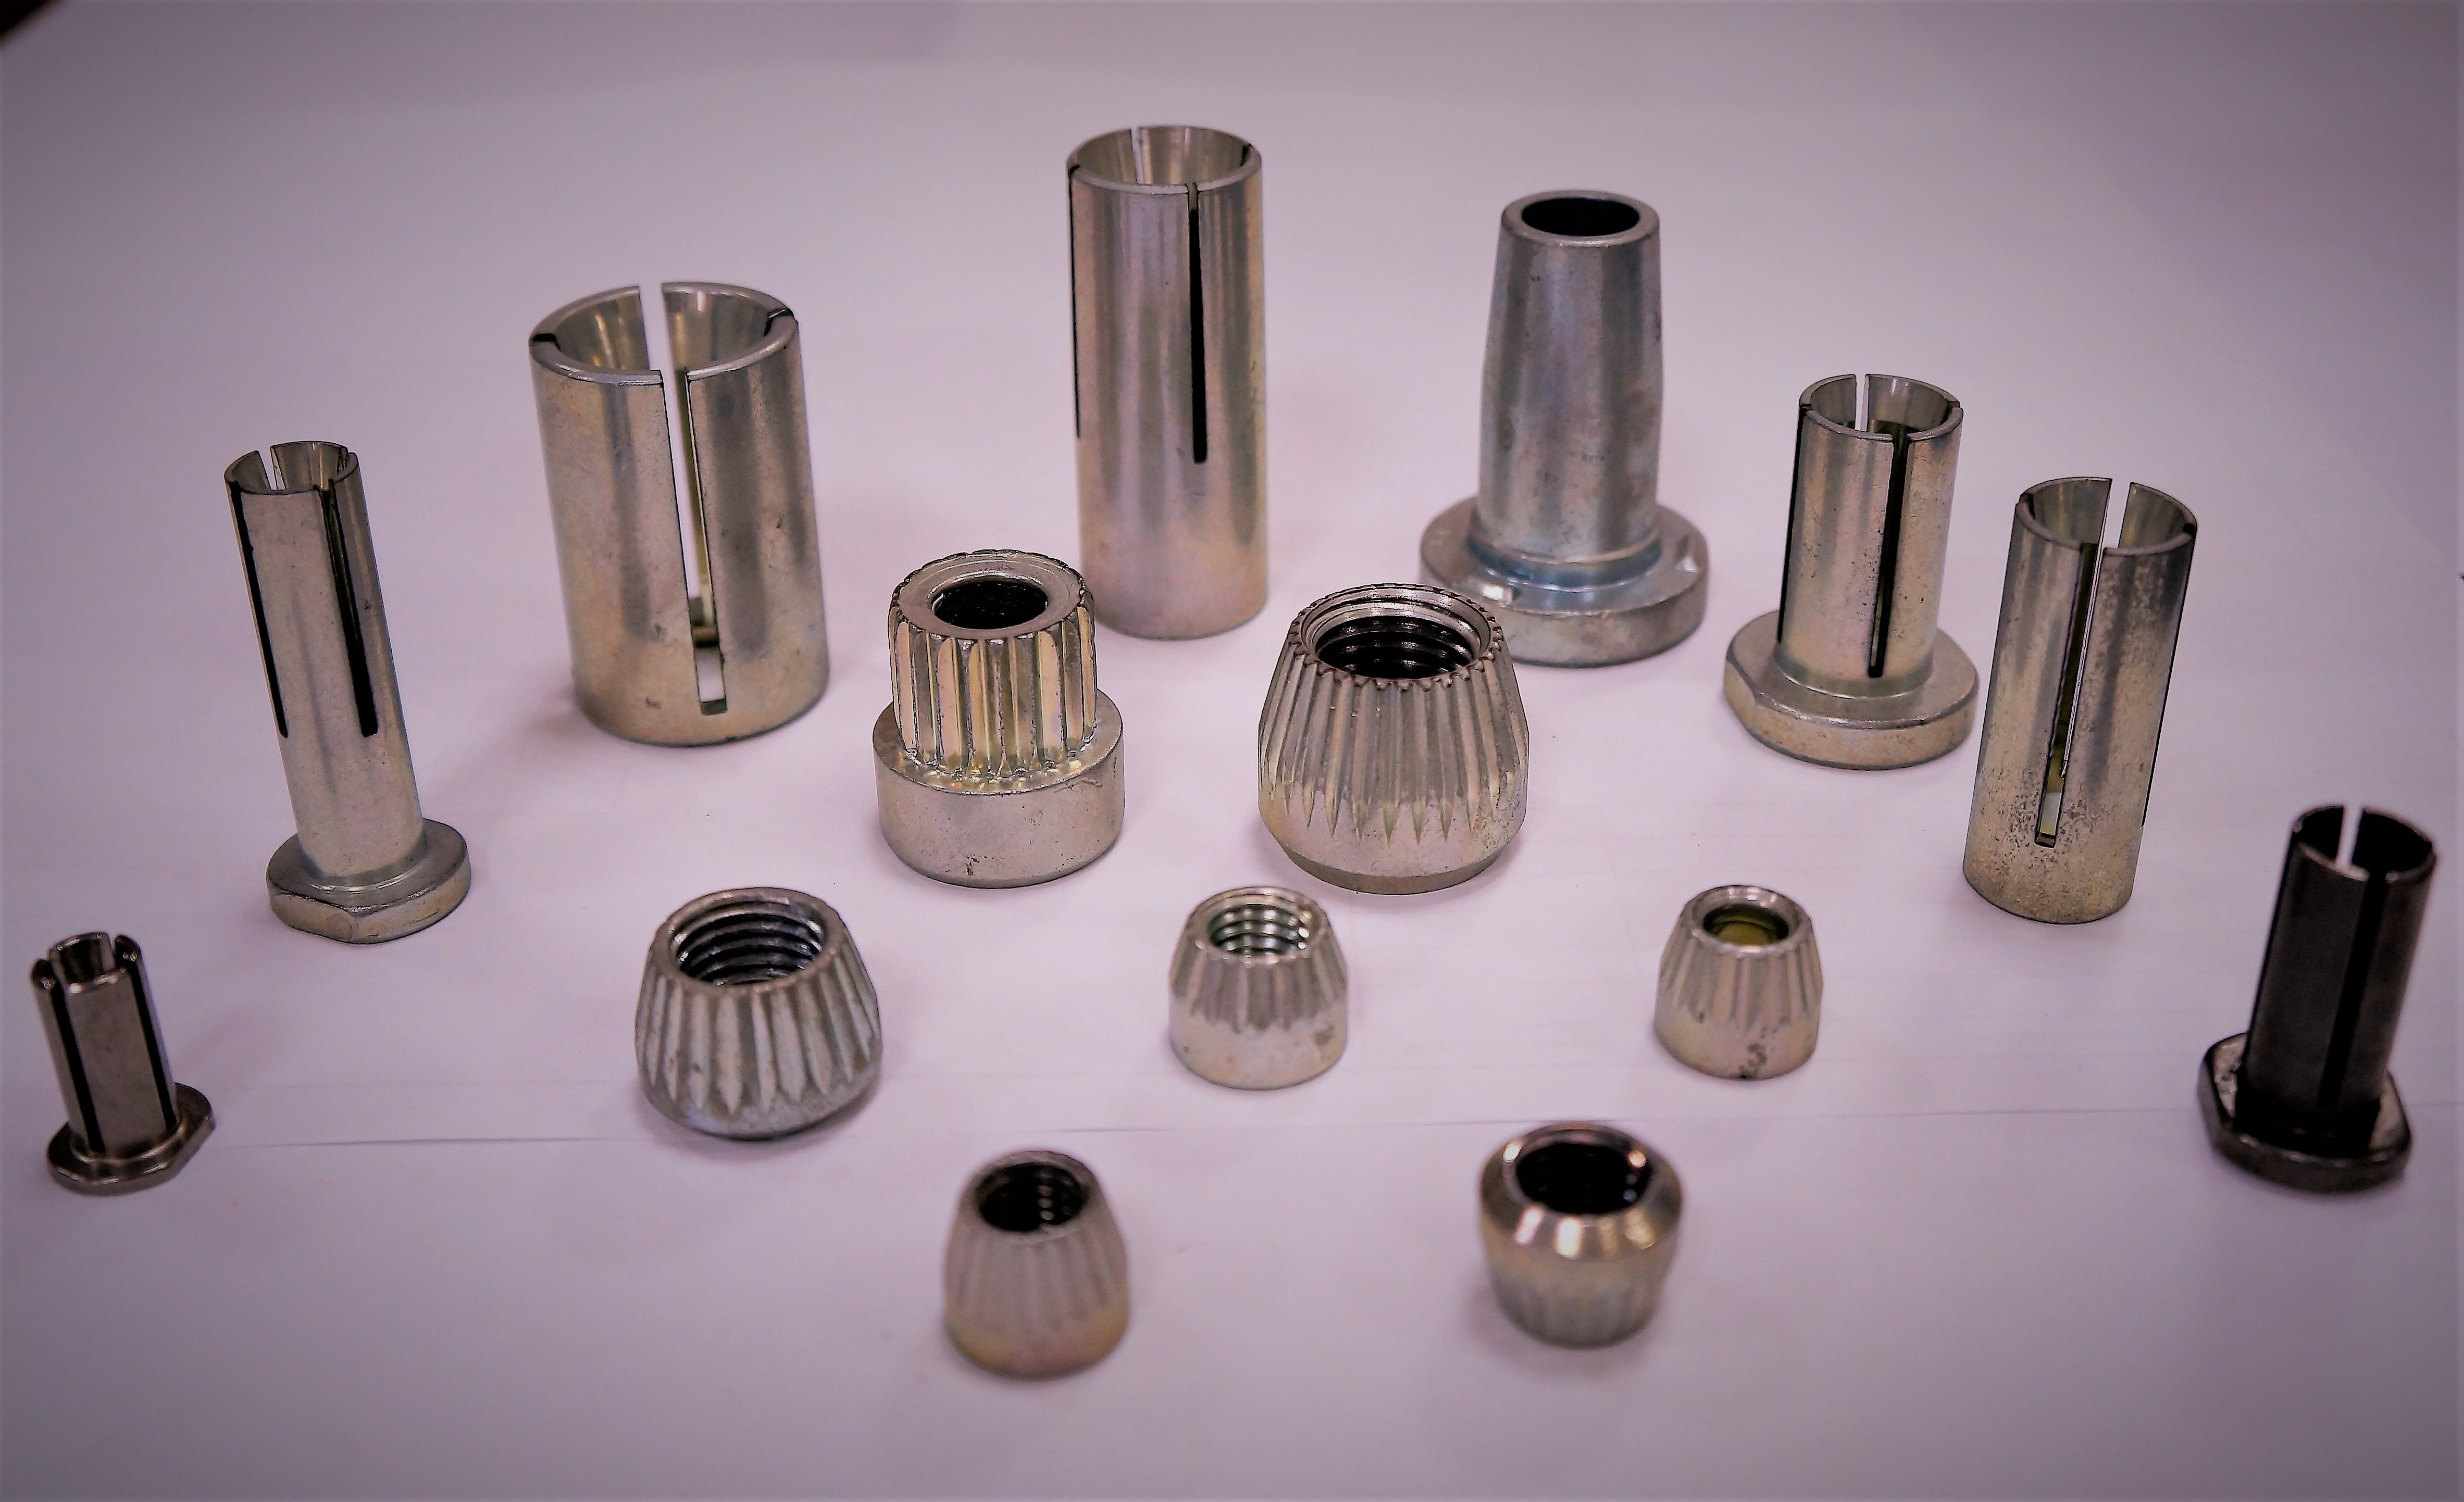 Automobile Sleeve for Vehicle Fastener made by Sunny Screw Industry 三能螺栓工業股份有限公司 - MatchSupplier.com